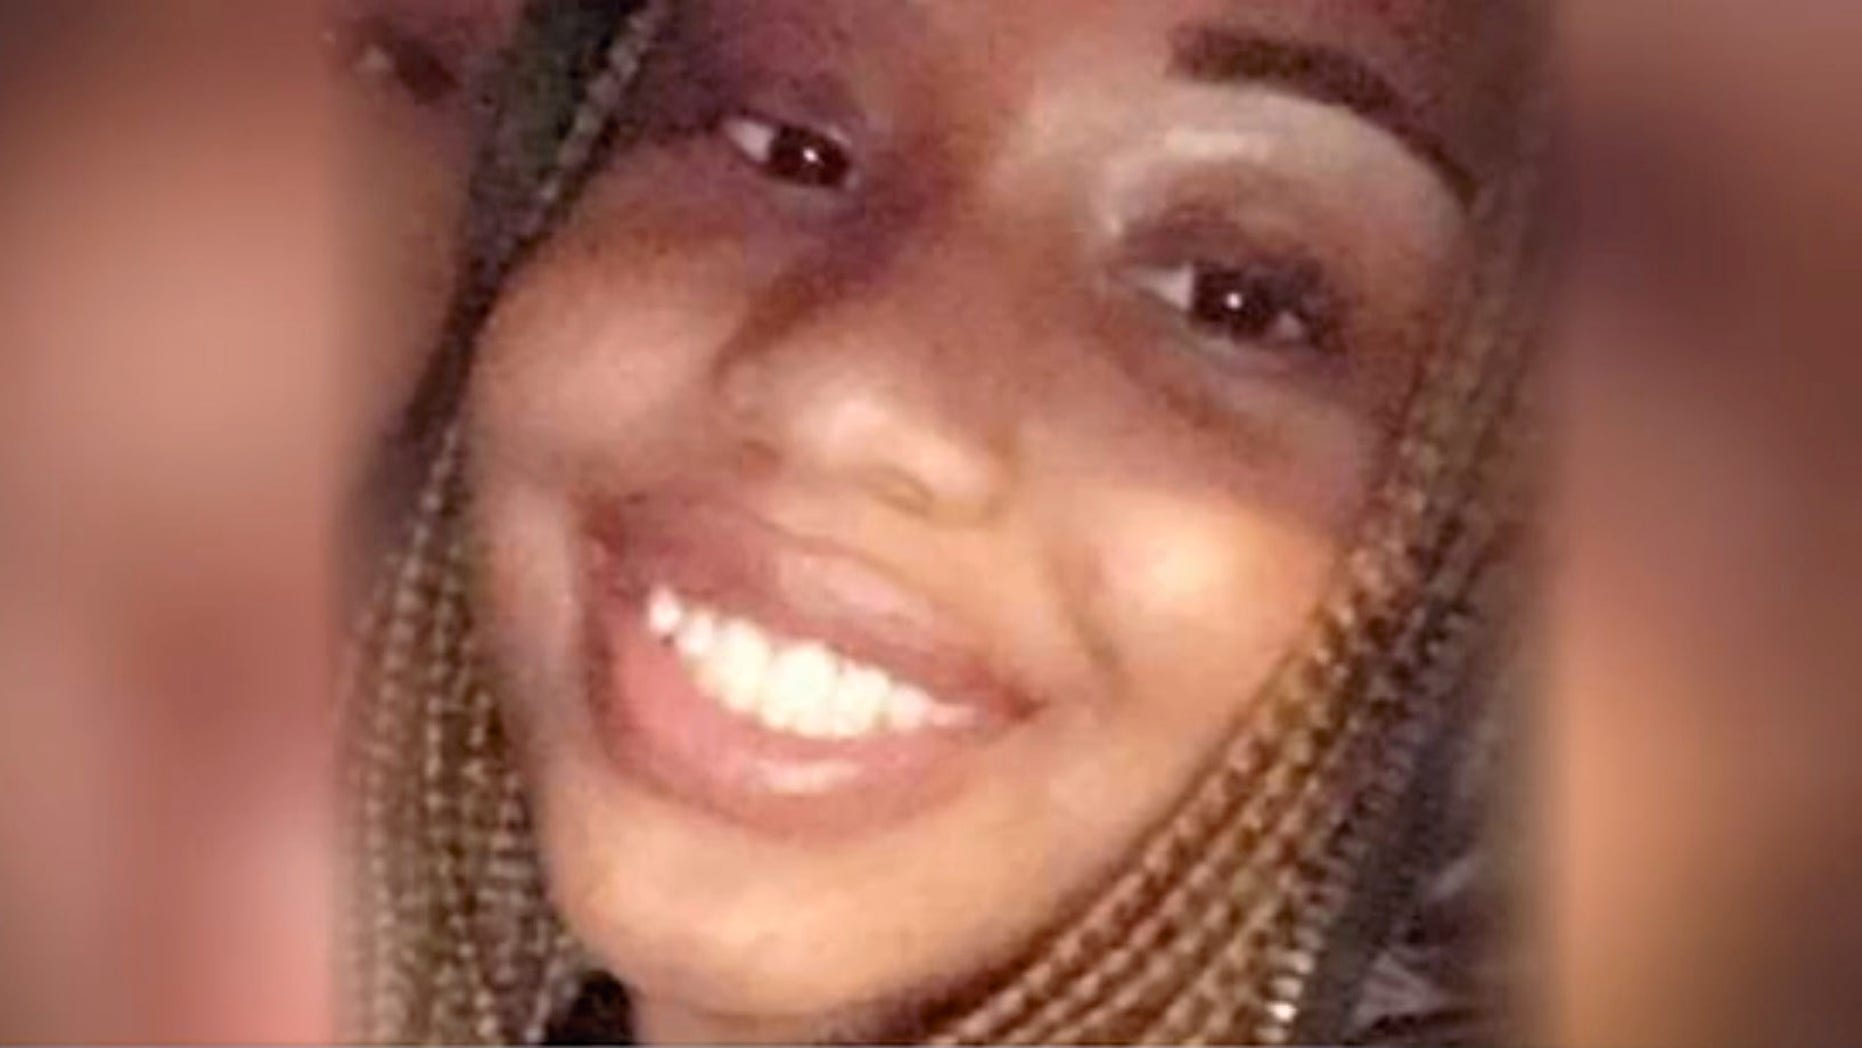 The body of 16-year-old Jholie Moussa was discovered last week in a northern Virginia park.